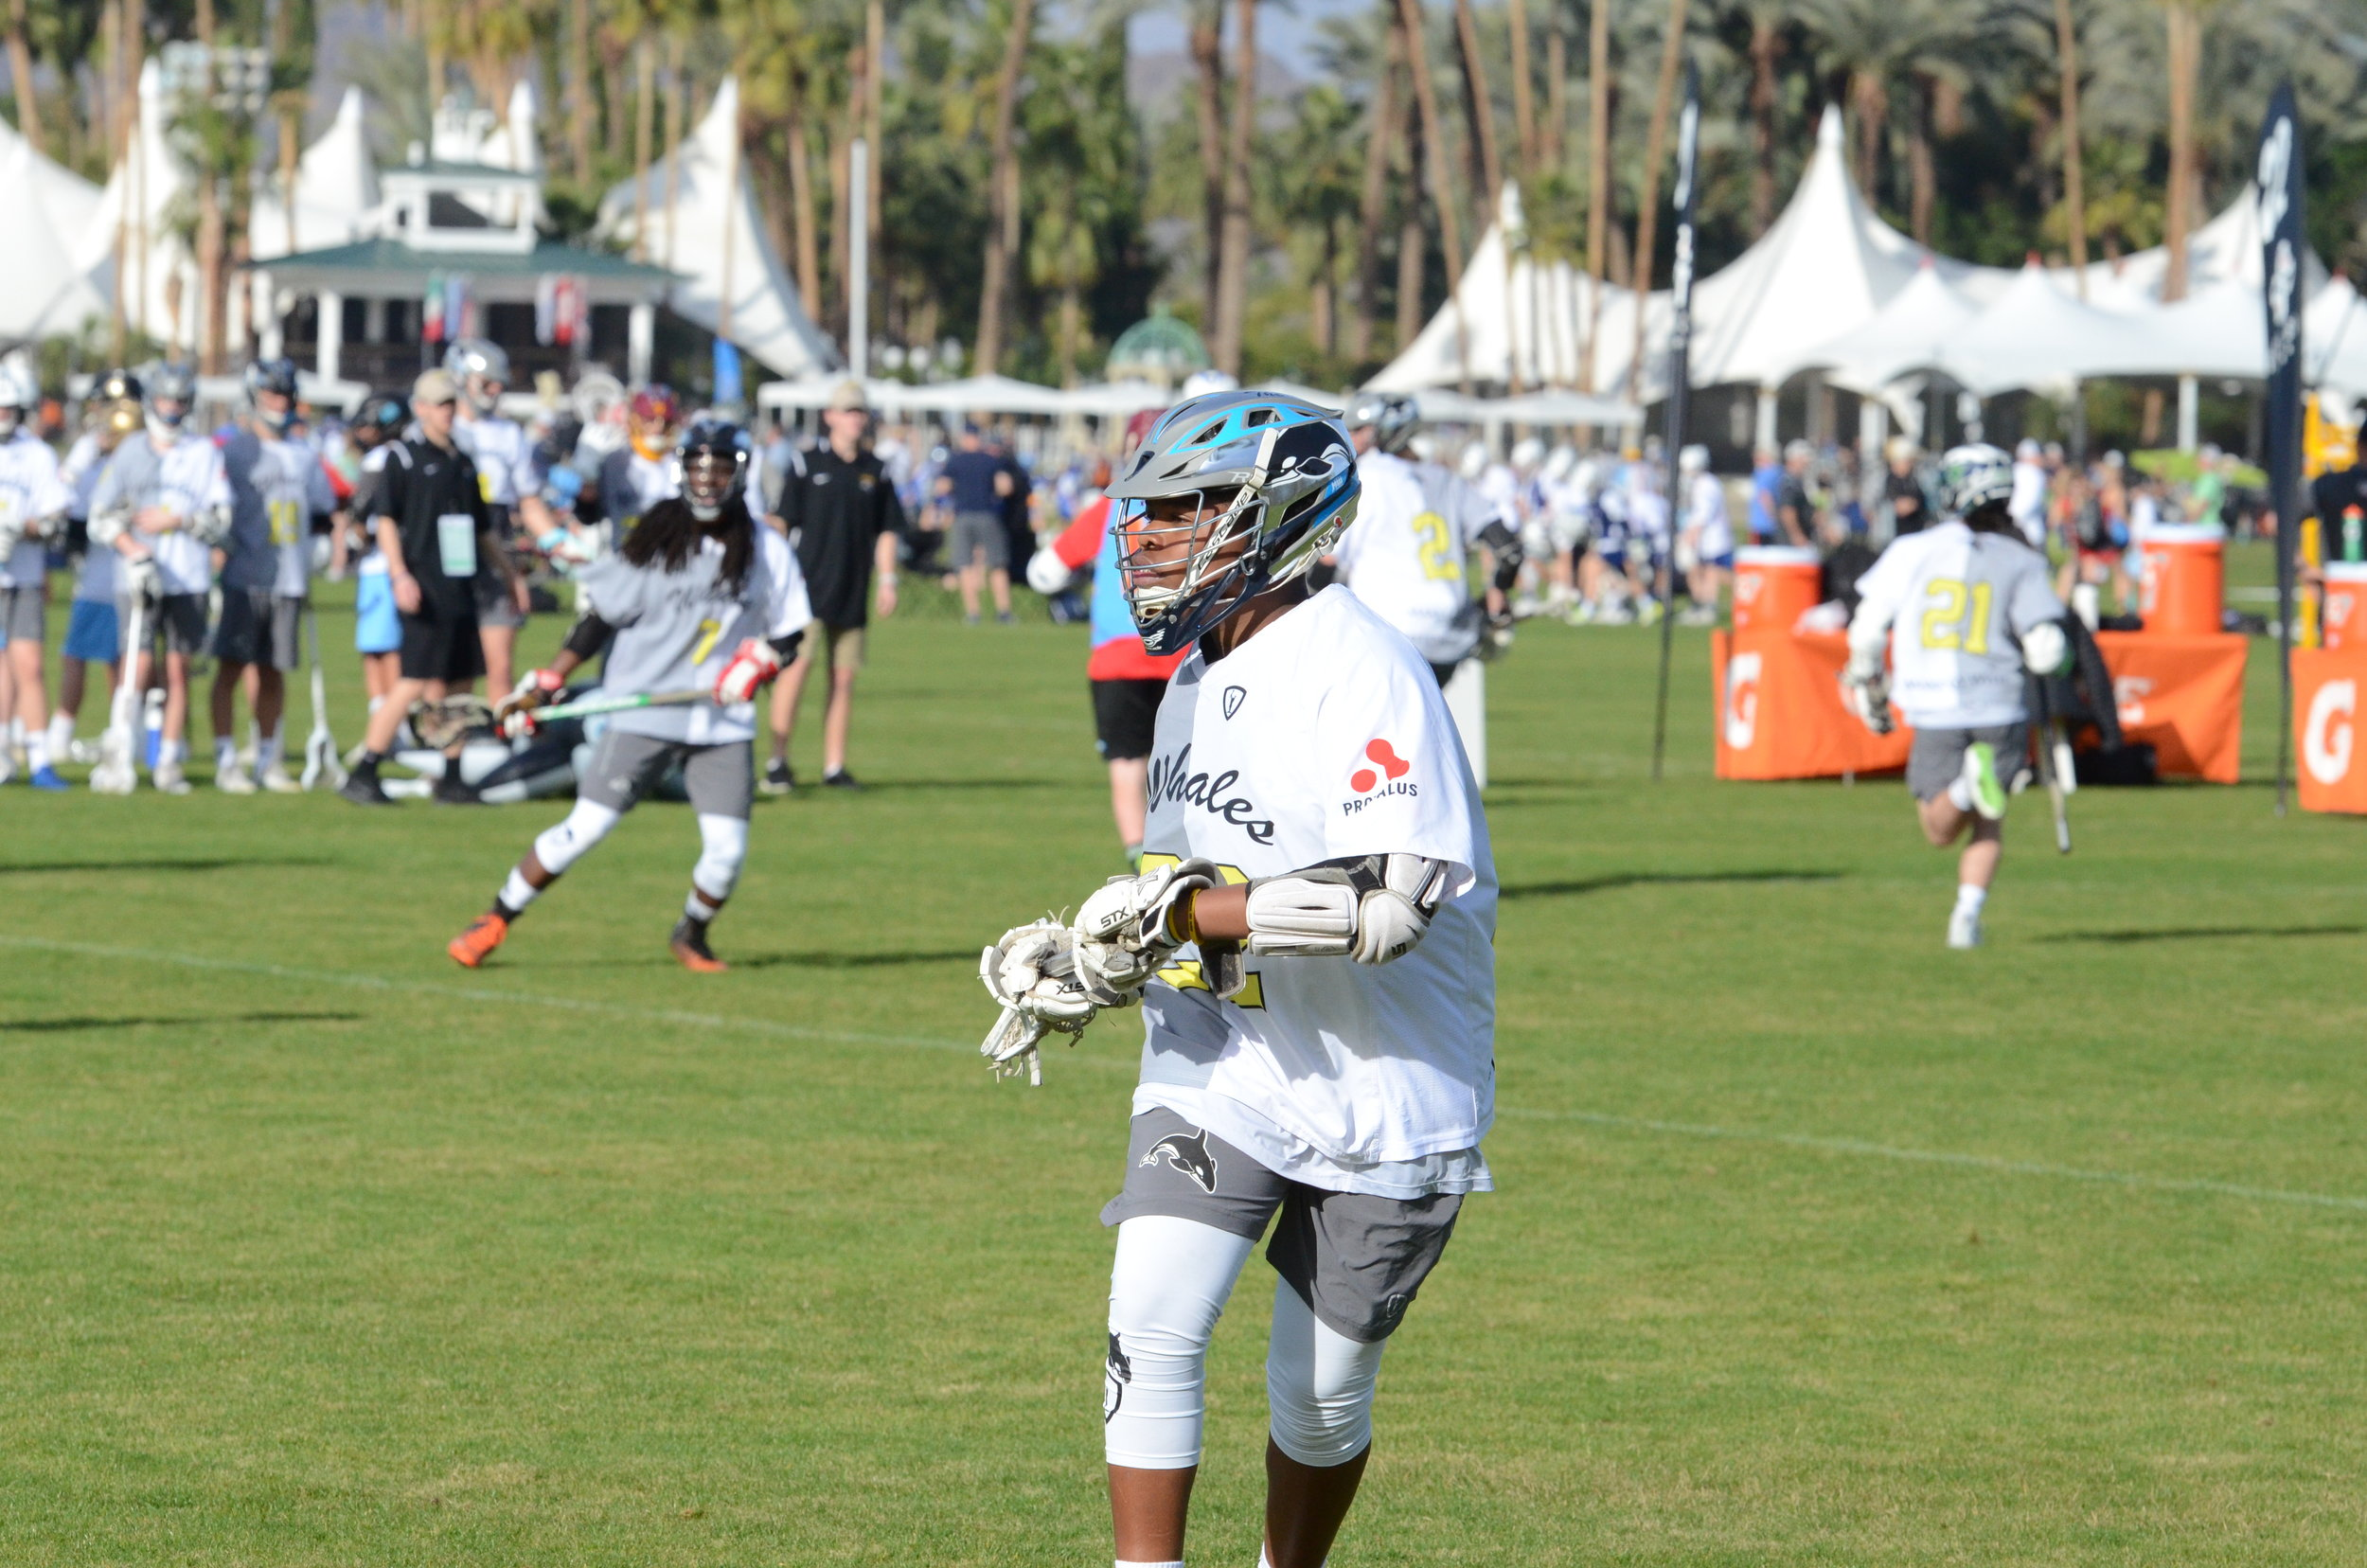 """""""Whales has managed to concentrate all of the great aspects of lacrosse & team sports such as camaraderie, unselfishness, and high level competition, while filtering out the bad. I can't say enough about the experience that my sons had playing with Whales.""""  - Derrick Clark, dad of players on Pods 10, 12 and 13"""